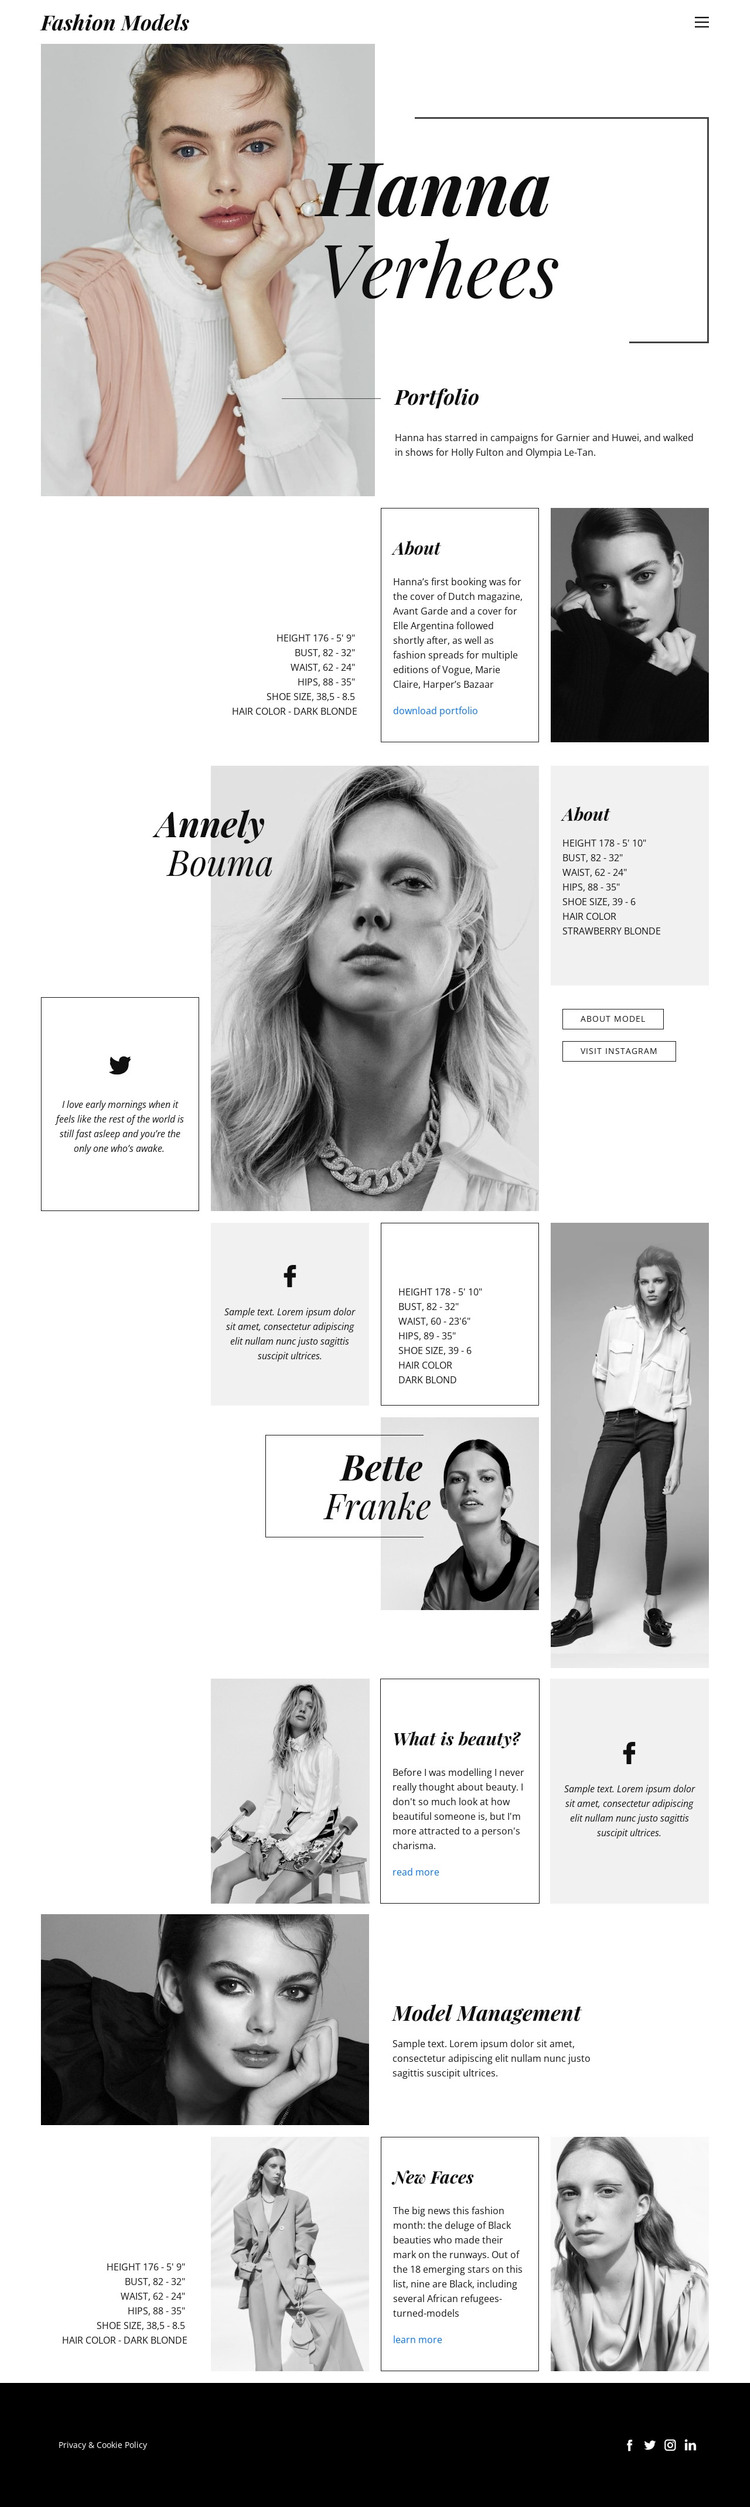 Hanna Verhees Blog WordPress Theme